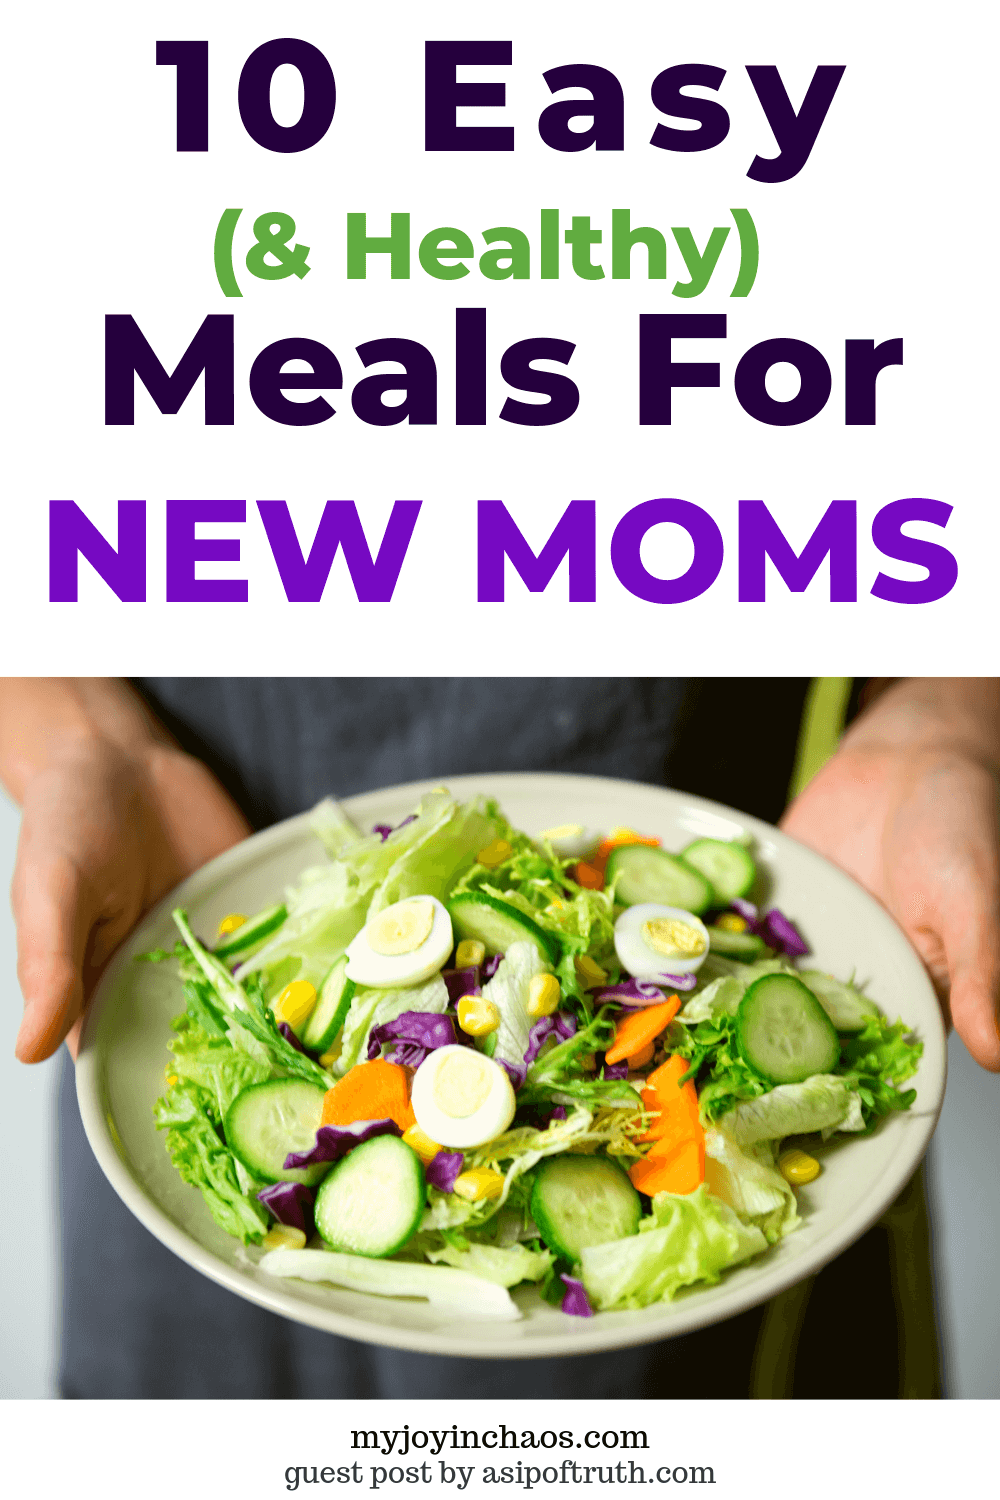 Meals to bring to a new mom that are healthy, simple, and delicious.